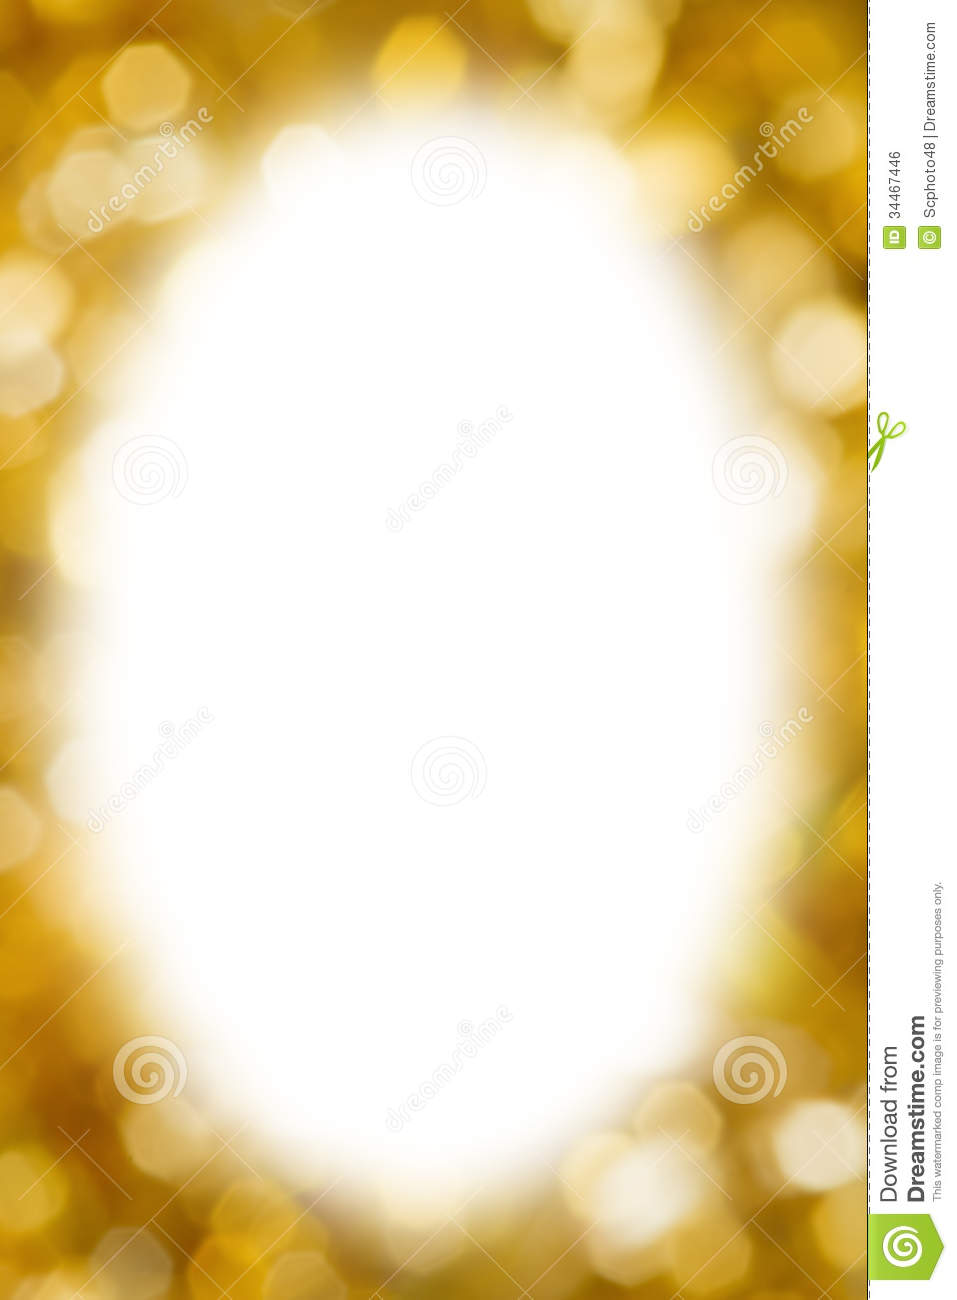 Abstract Gold Blurred Lights Christmas Background Royalty